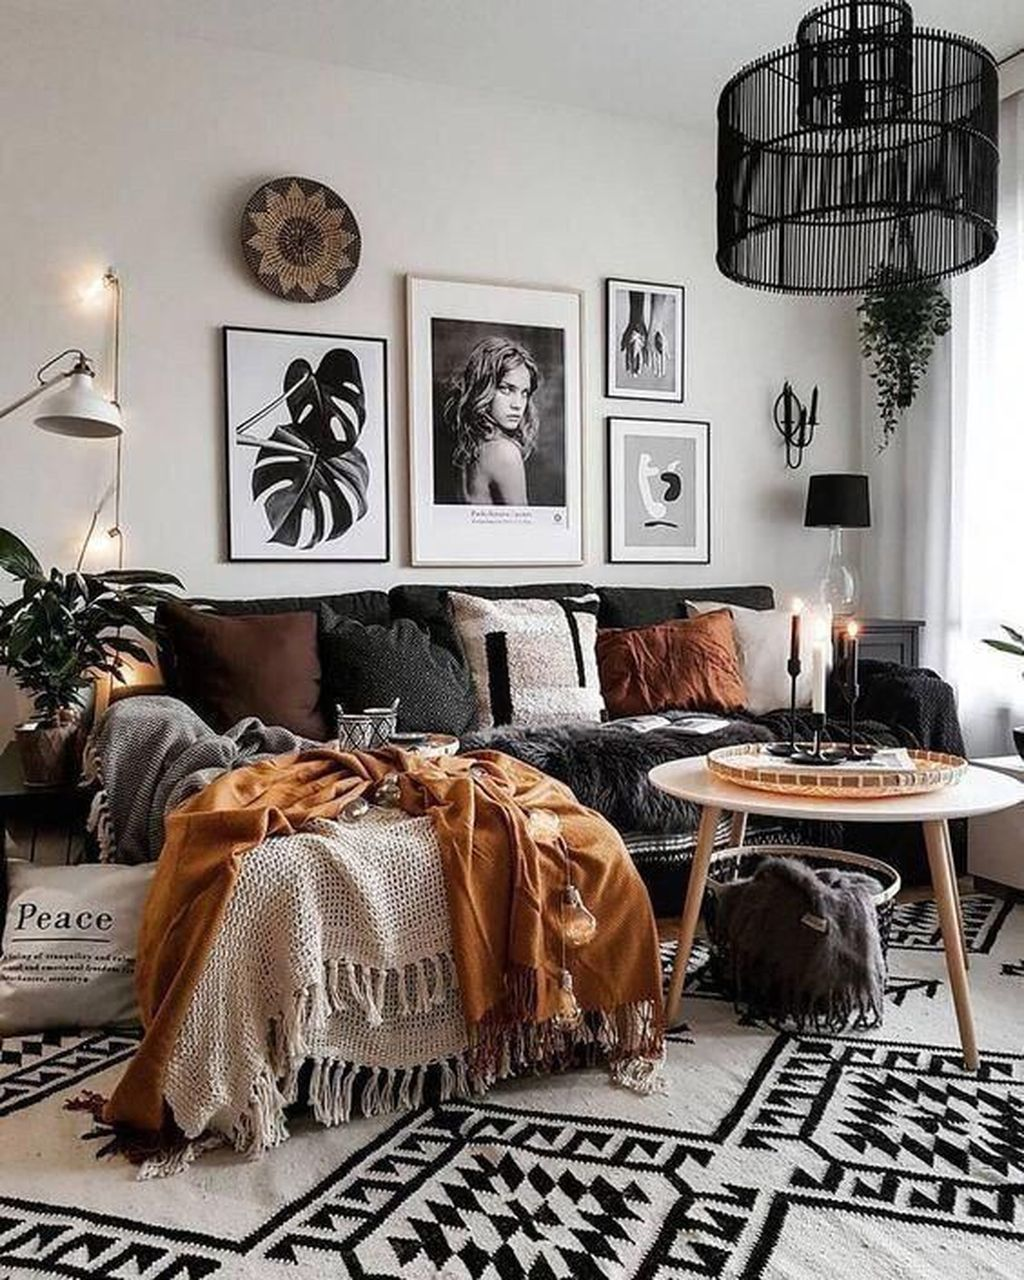 The Best Rustic Bohemian Living Room Decor Ideas 11